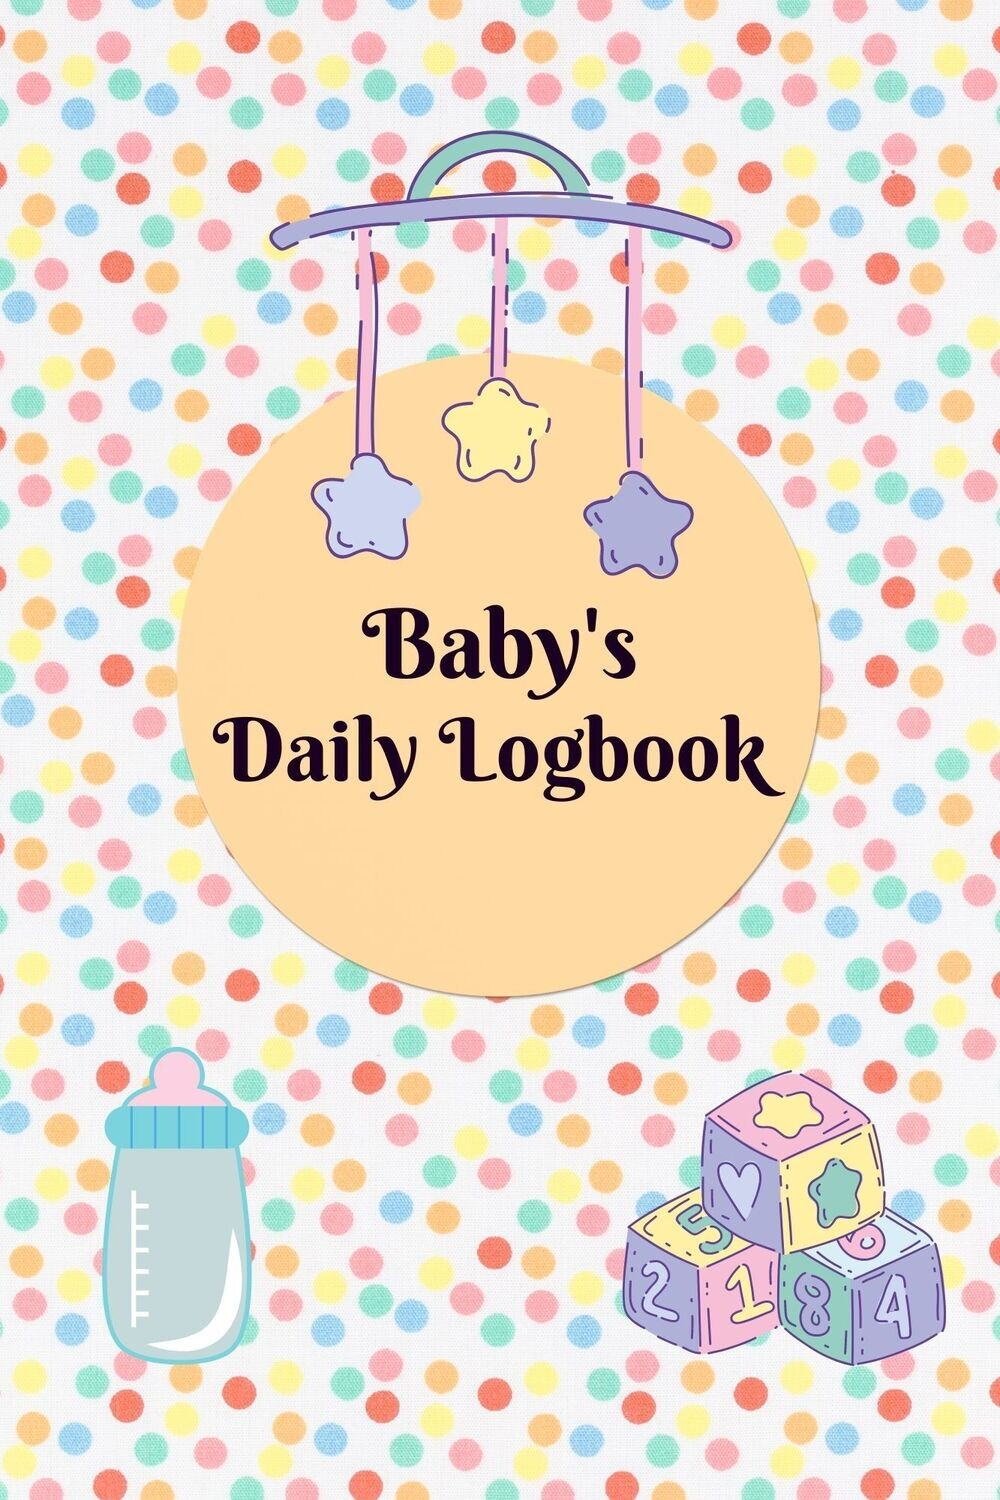 Baby's Daily Logbook e-book